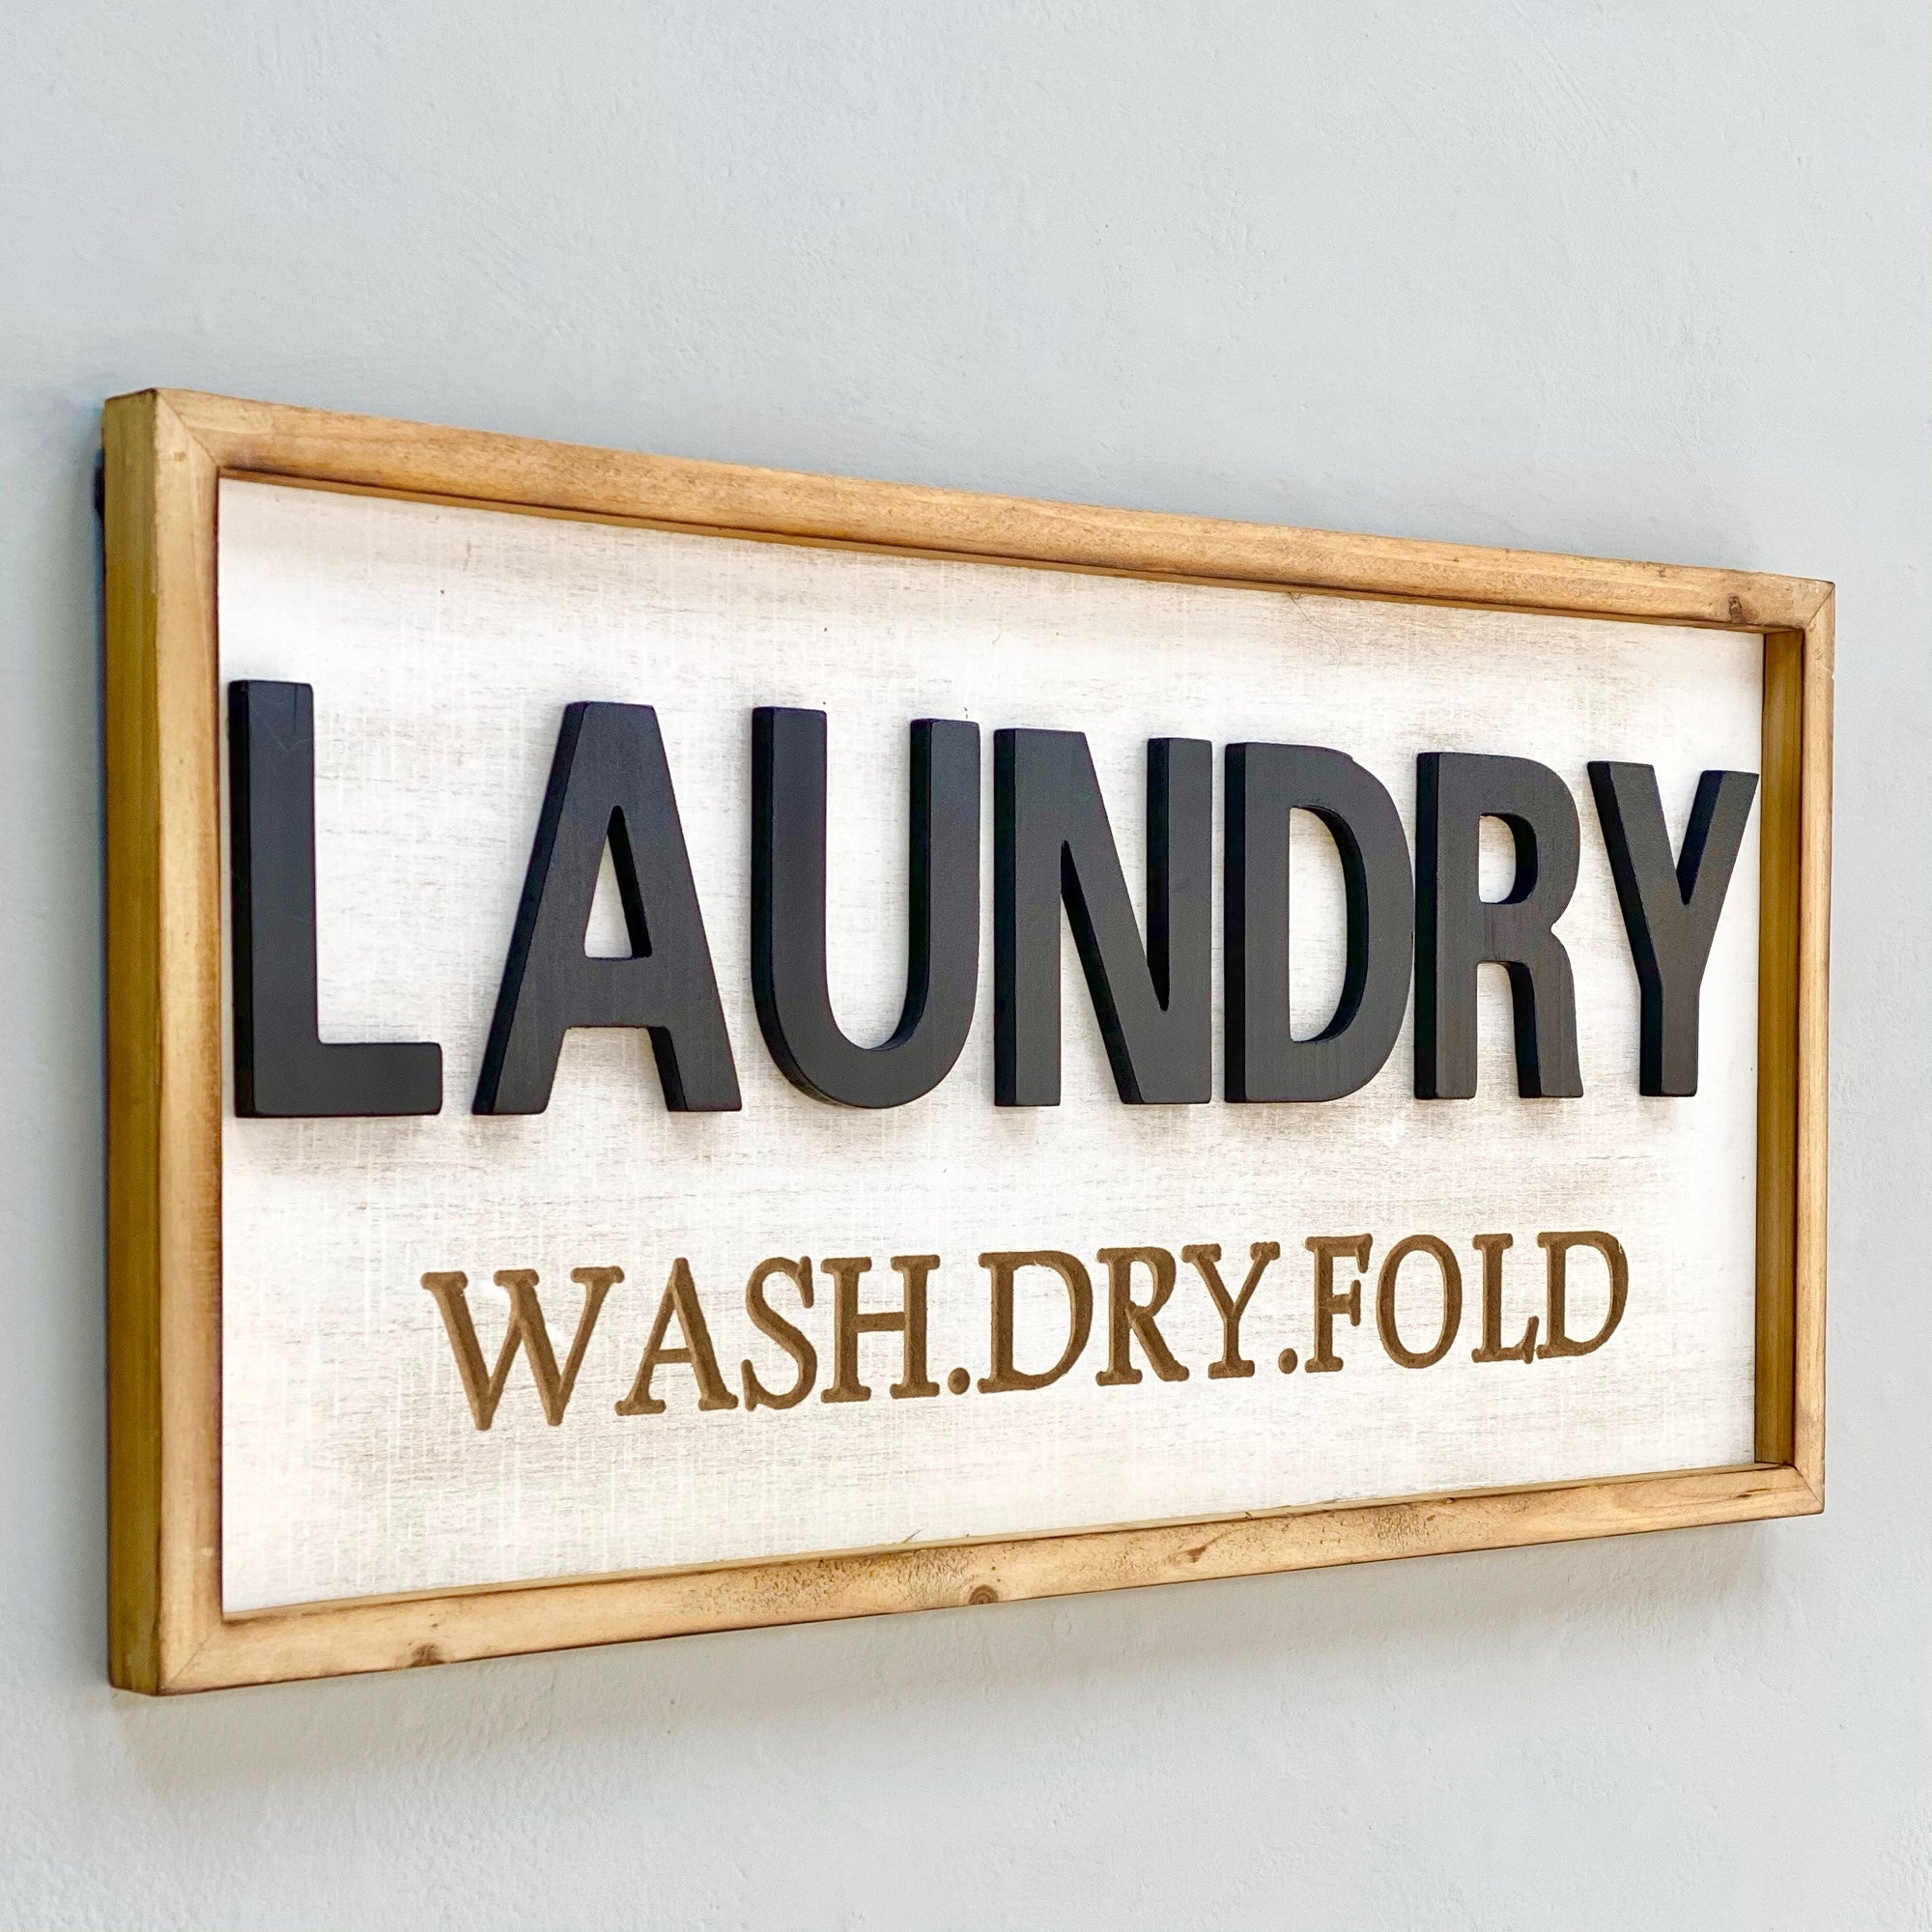 Laundry Bold Word Wooden Wall Art